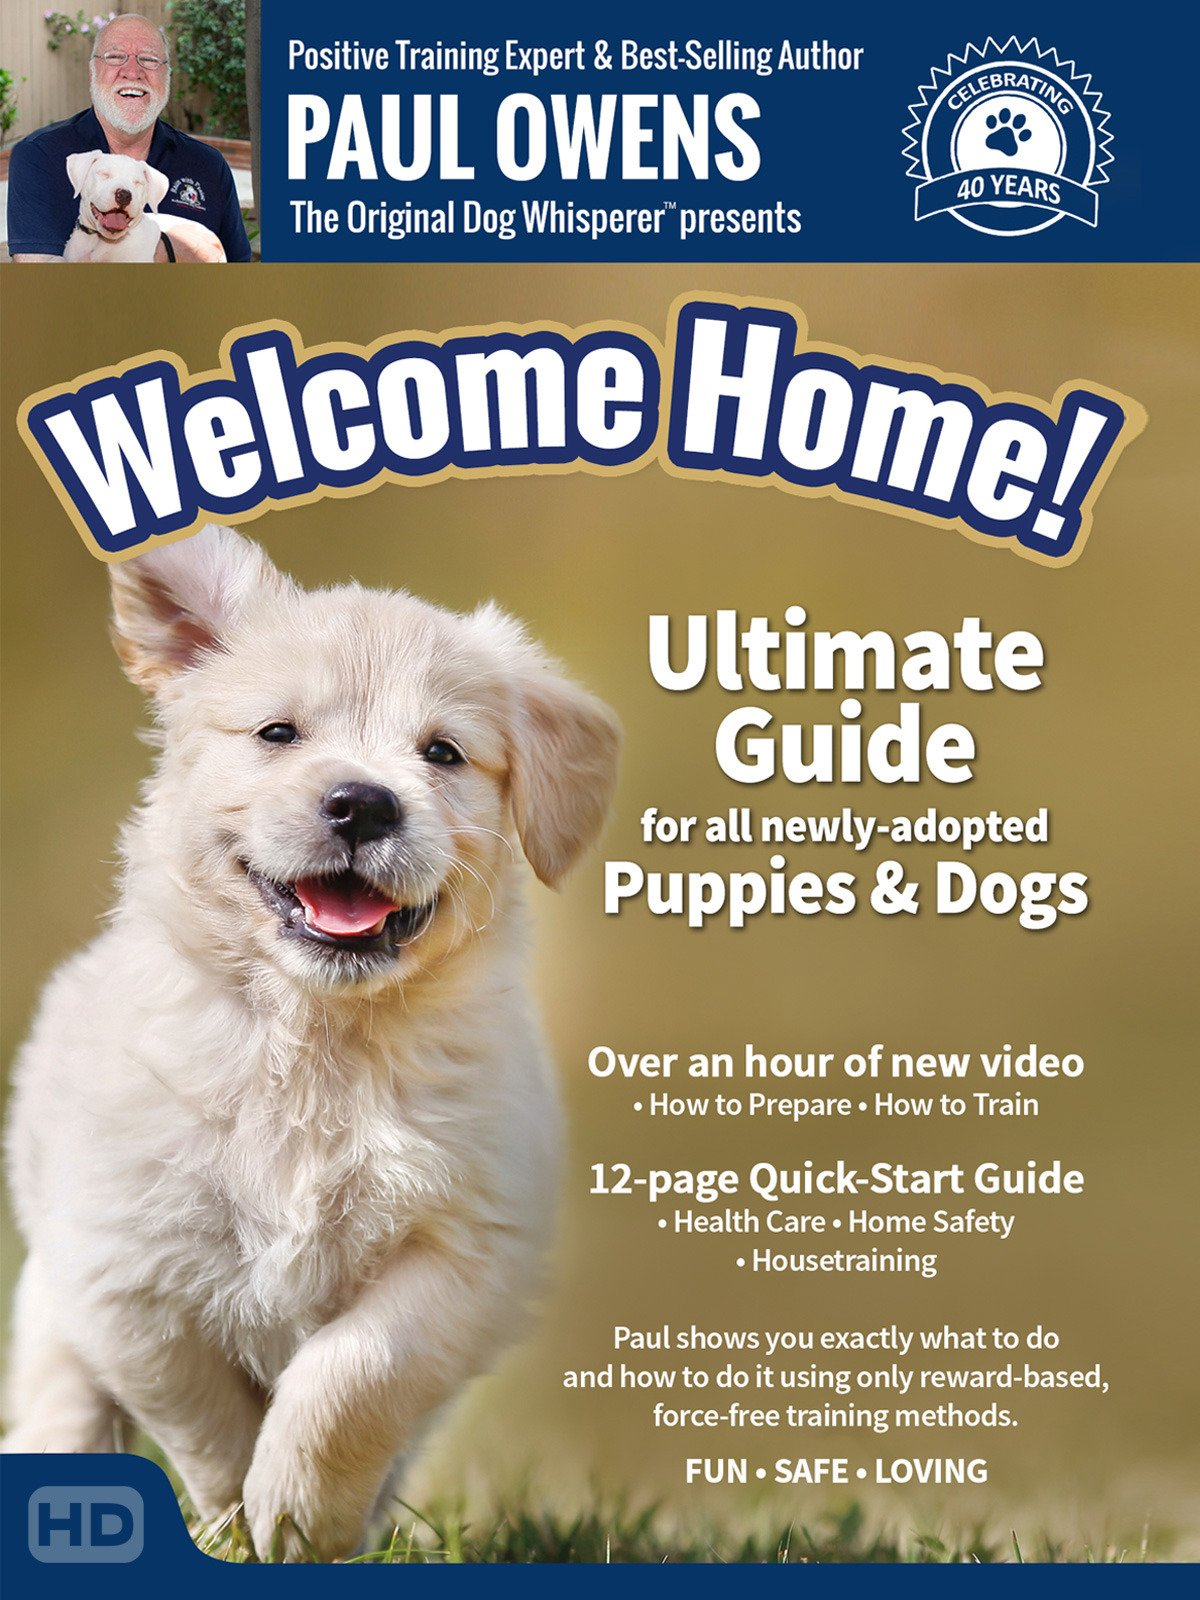 Paul Owens, The Original Dog Whisperer presents: Welcome Home! Ultimate Guide for all newly-adopted Puppies & Dogs